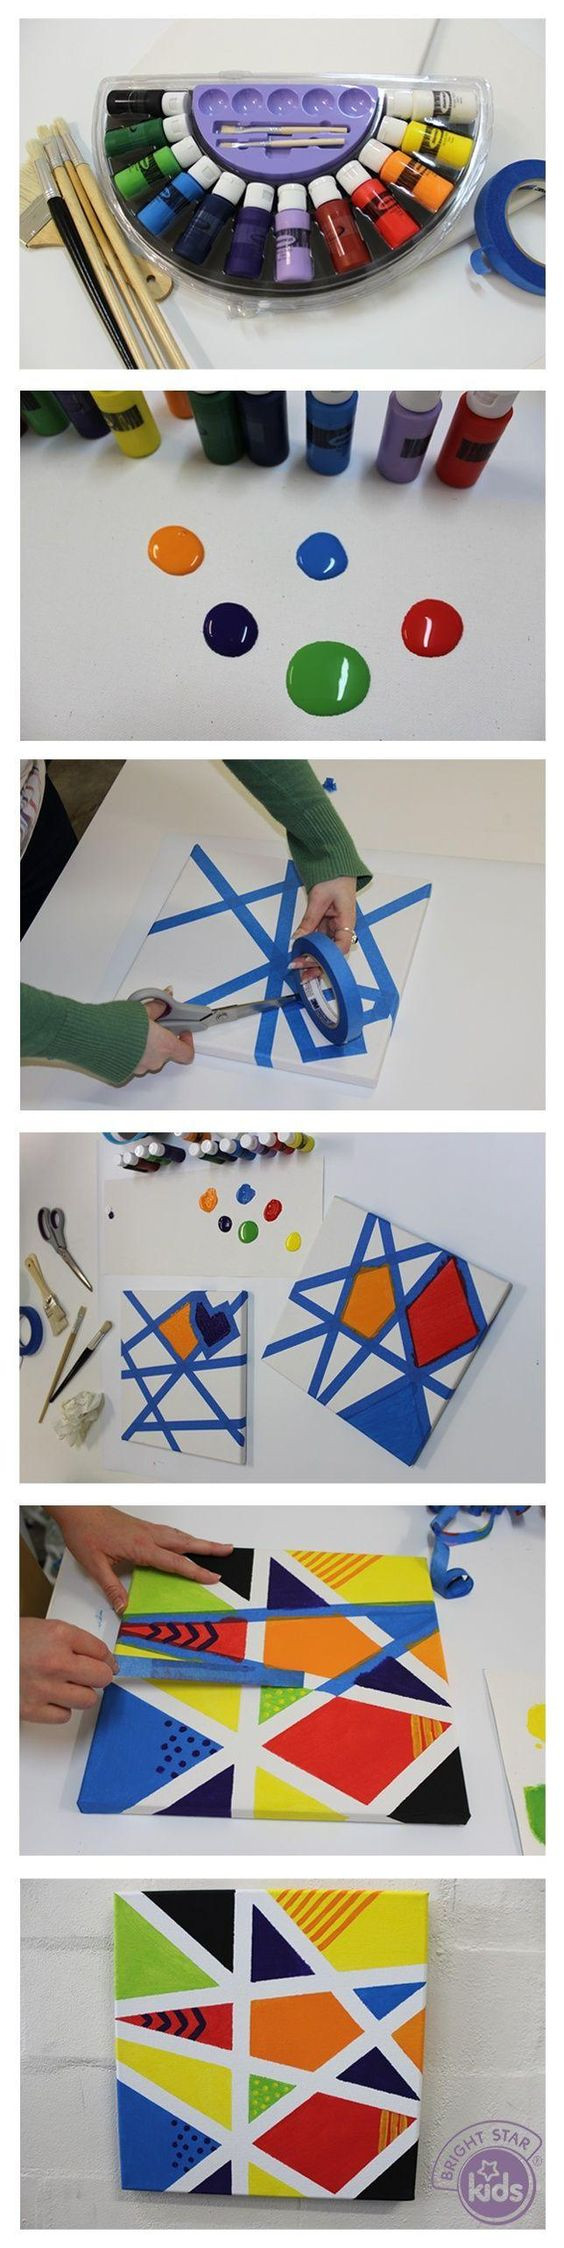 Best ideas about Cool DIY Projects For Kids . Save or Pin DIY Projects Home Ornaments Now.